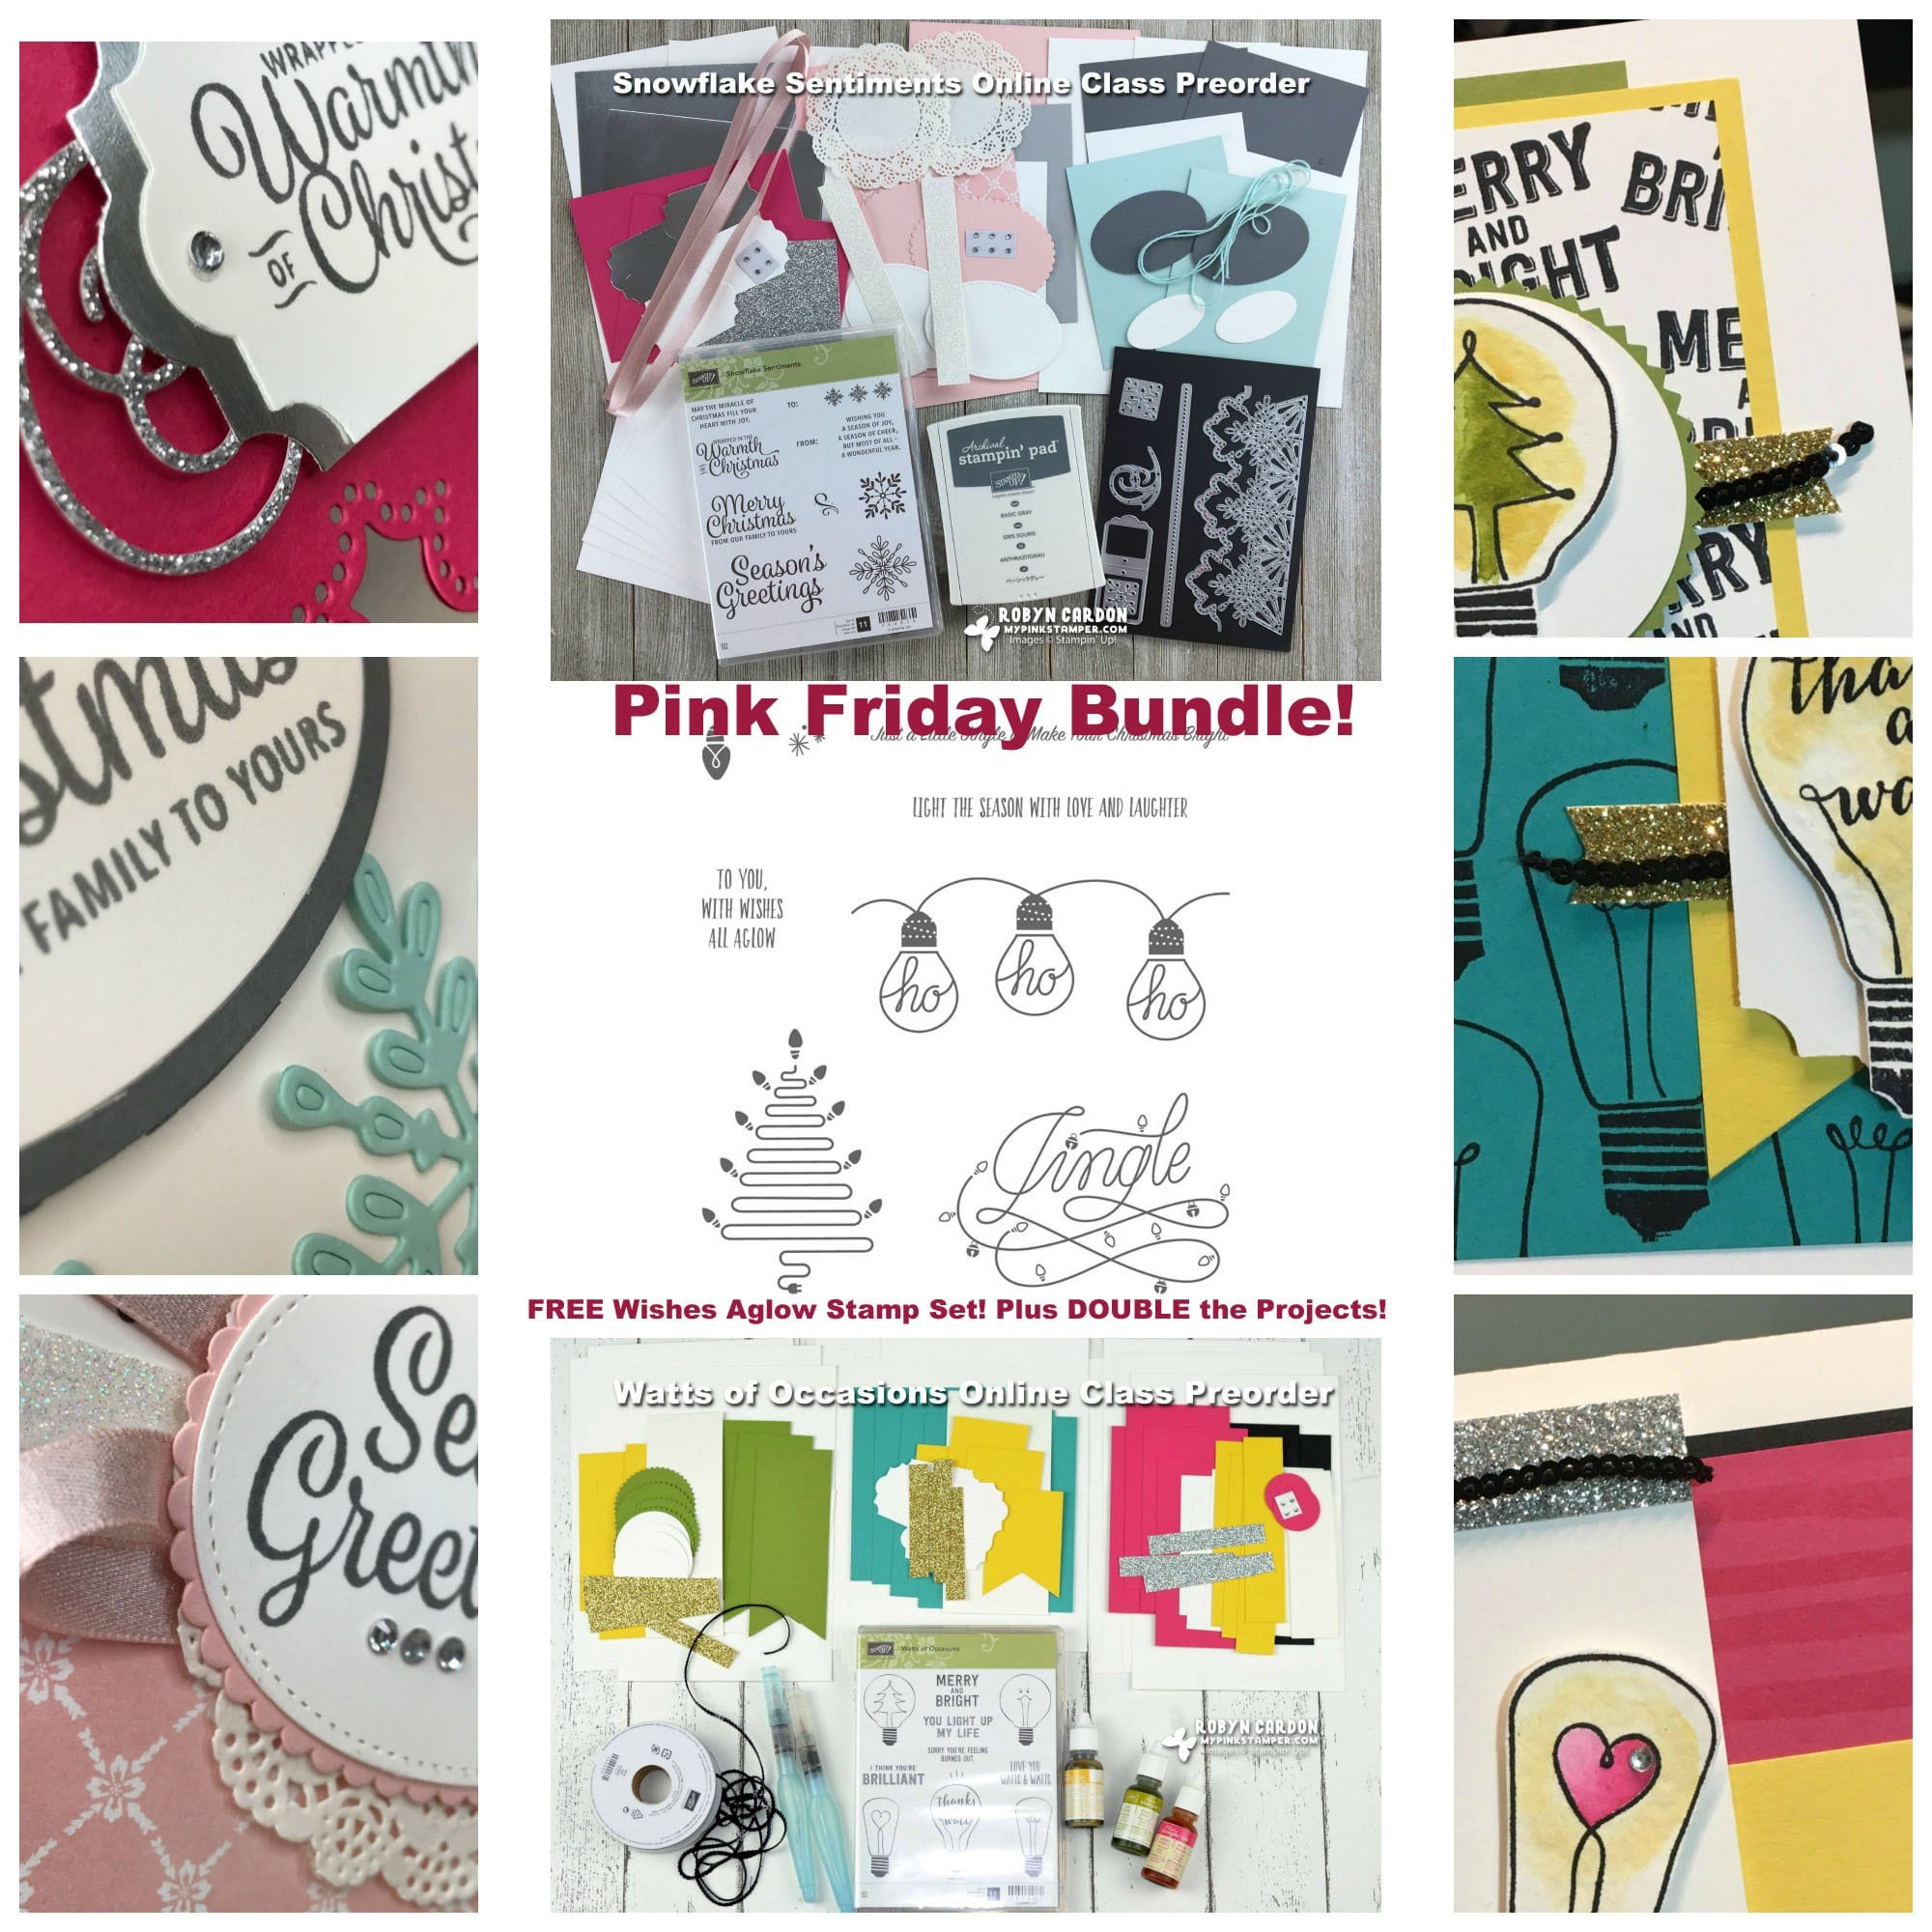 My Pink Friday Promotion! 2 Online Classes with Extra Goodies!